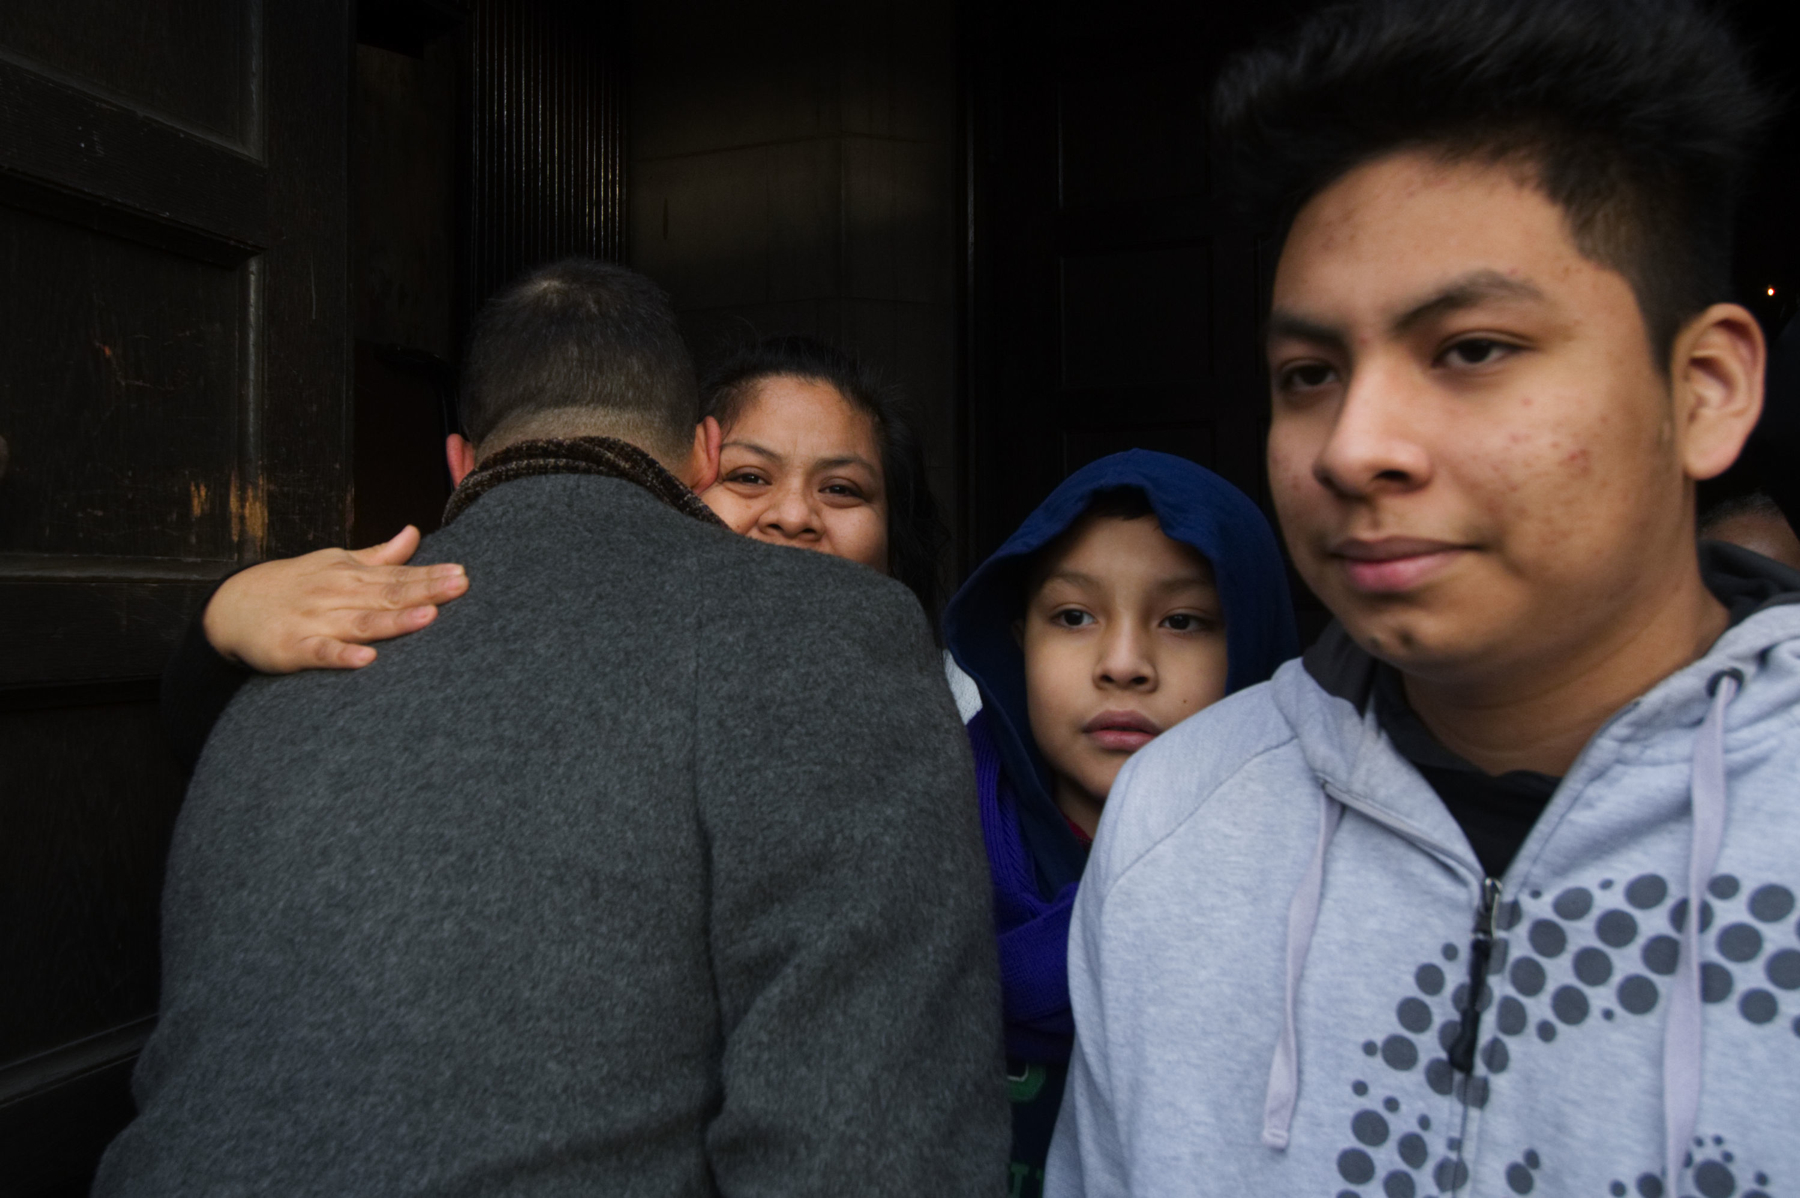 State Rep. Chris Rabb and Camela Apolonio Hernandez embrace in the doorway of Church of the Advocate in North Philadelphia as her four children leave sanctuary to go back to school for the first time since the family received a deportation order.